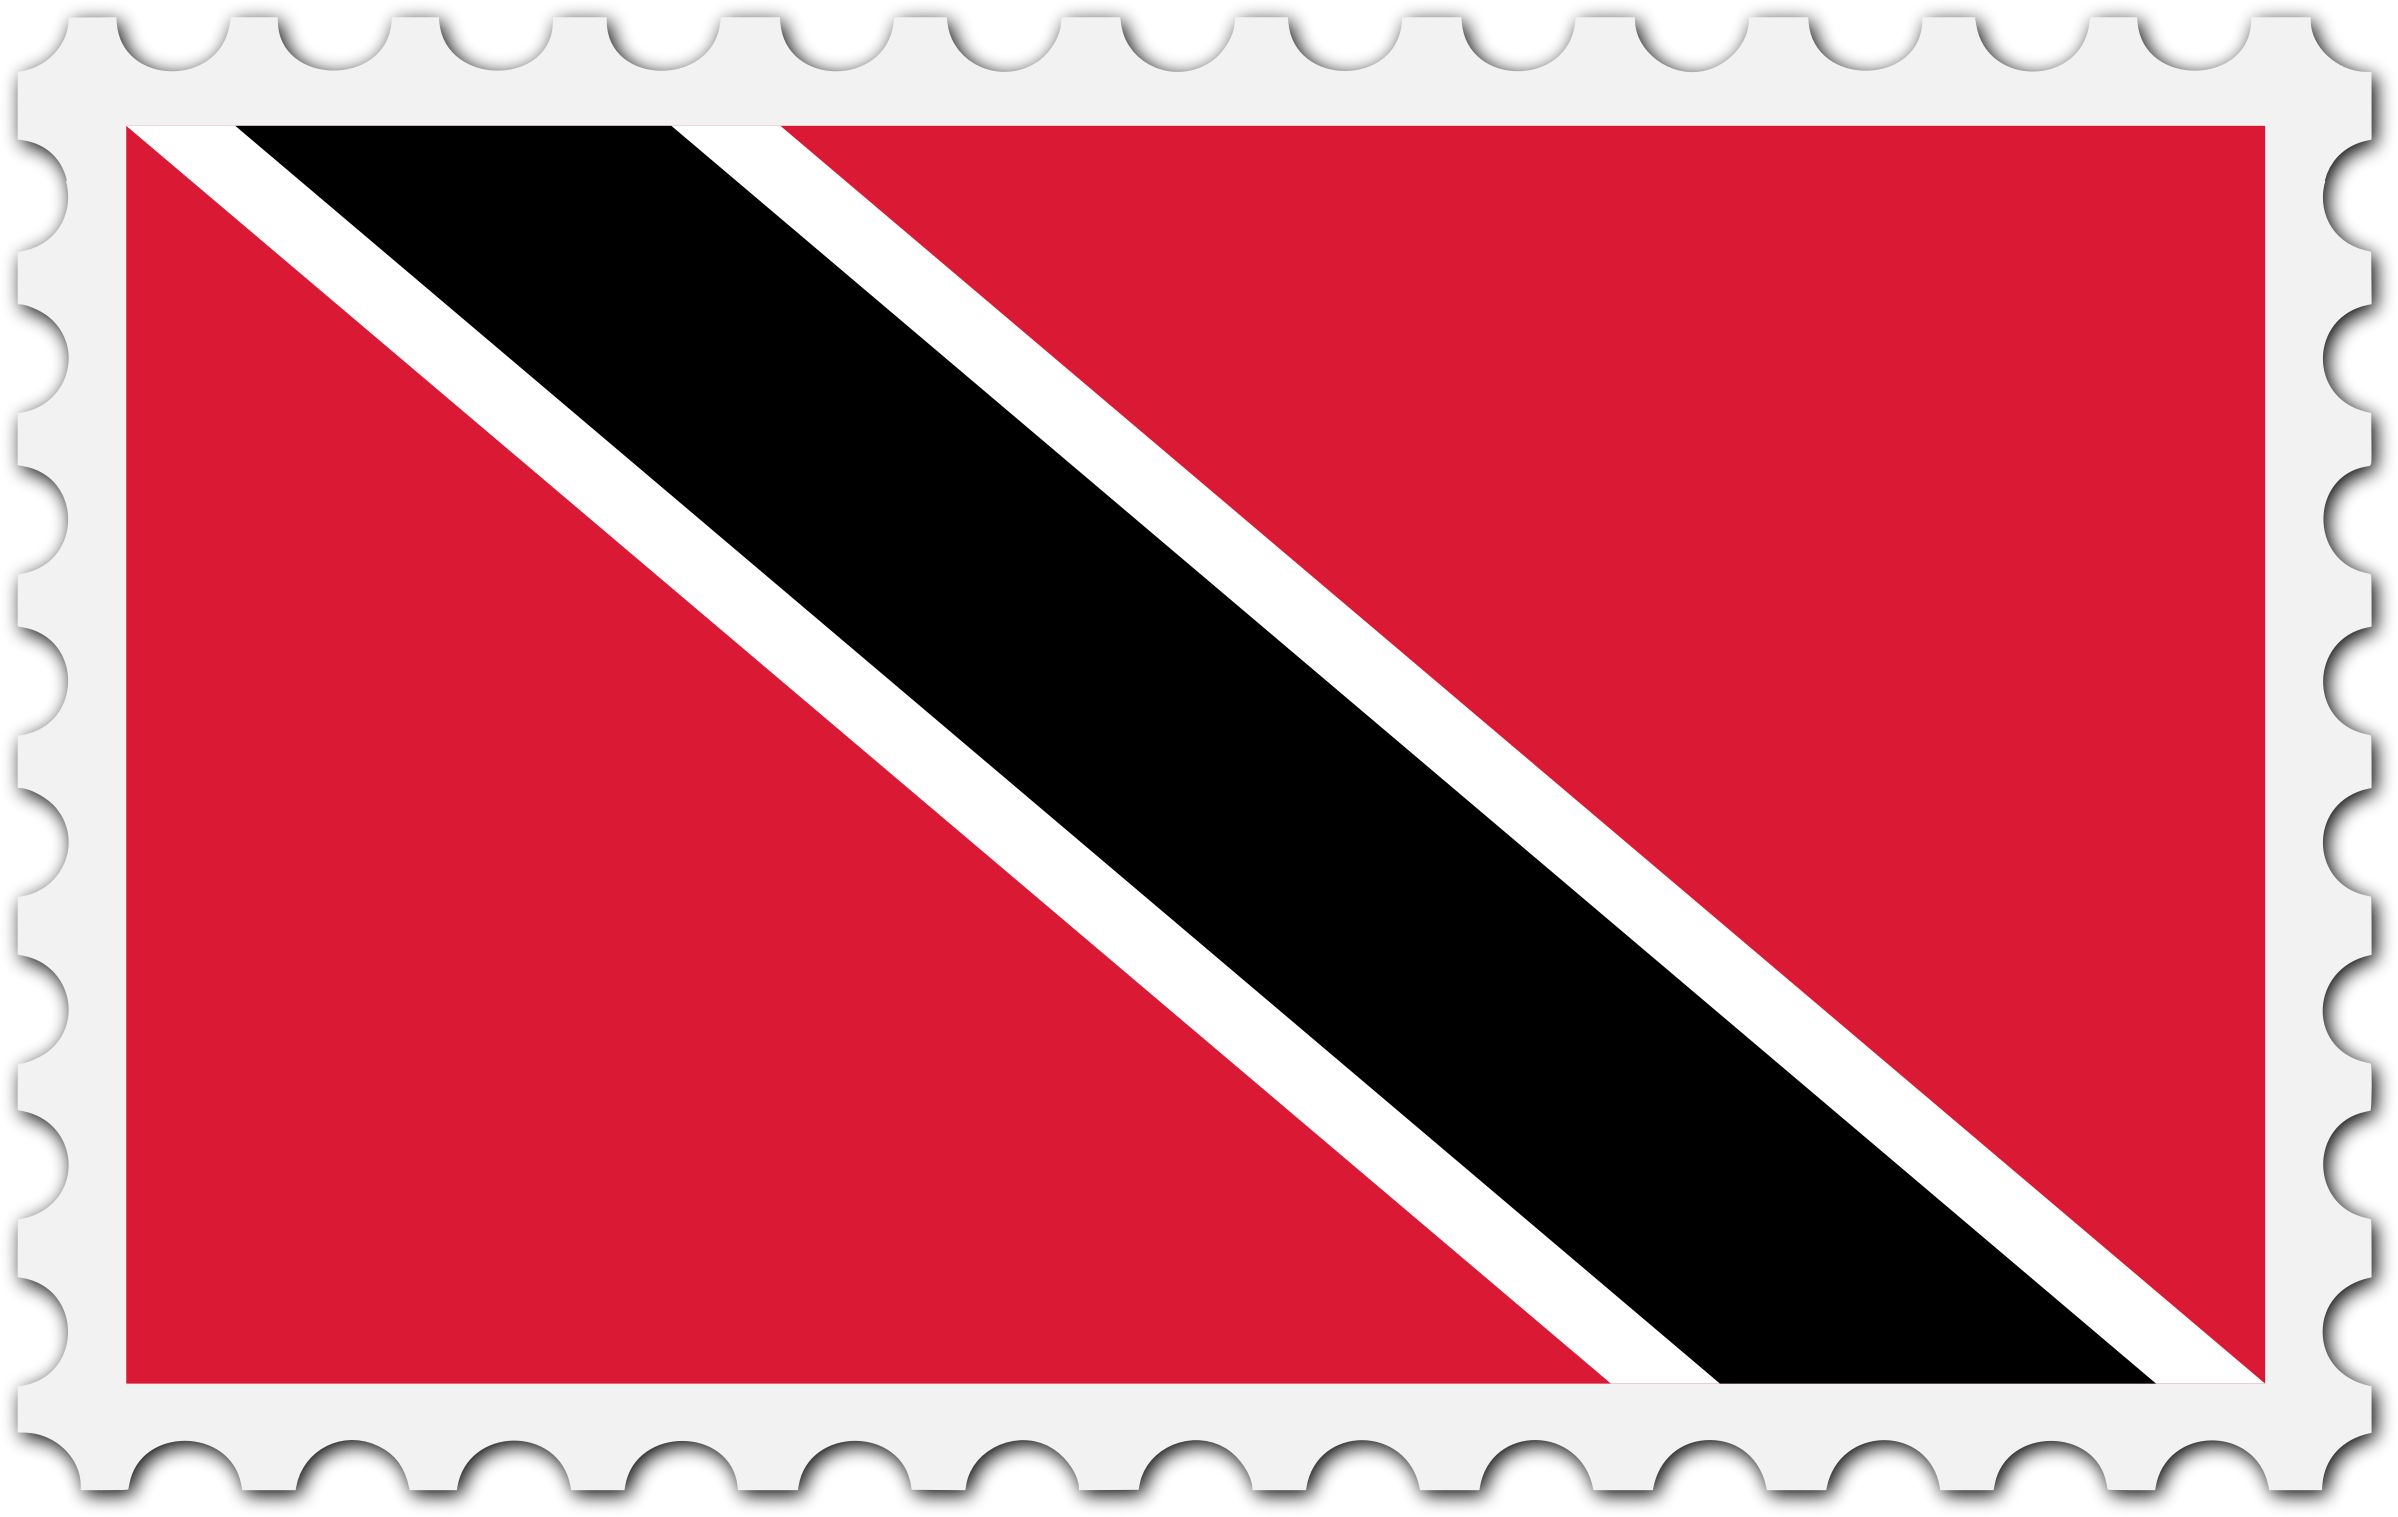 Trinidad and Tobago flag stamp by Firkin